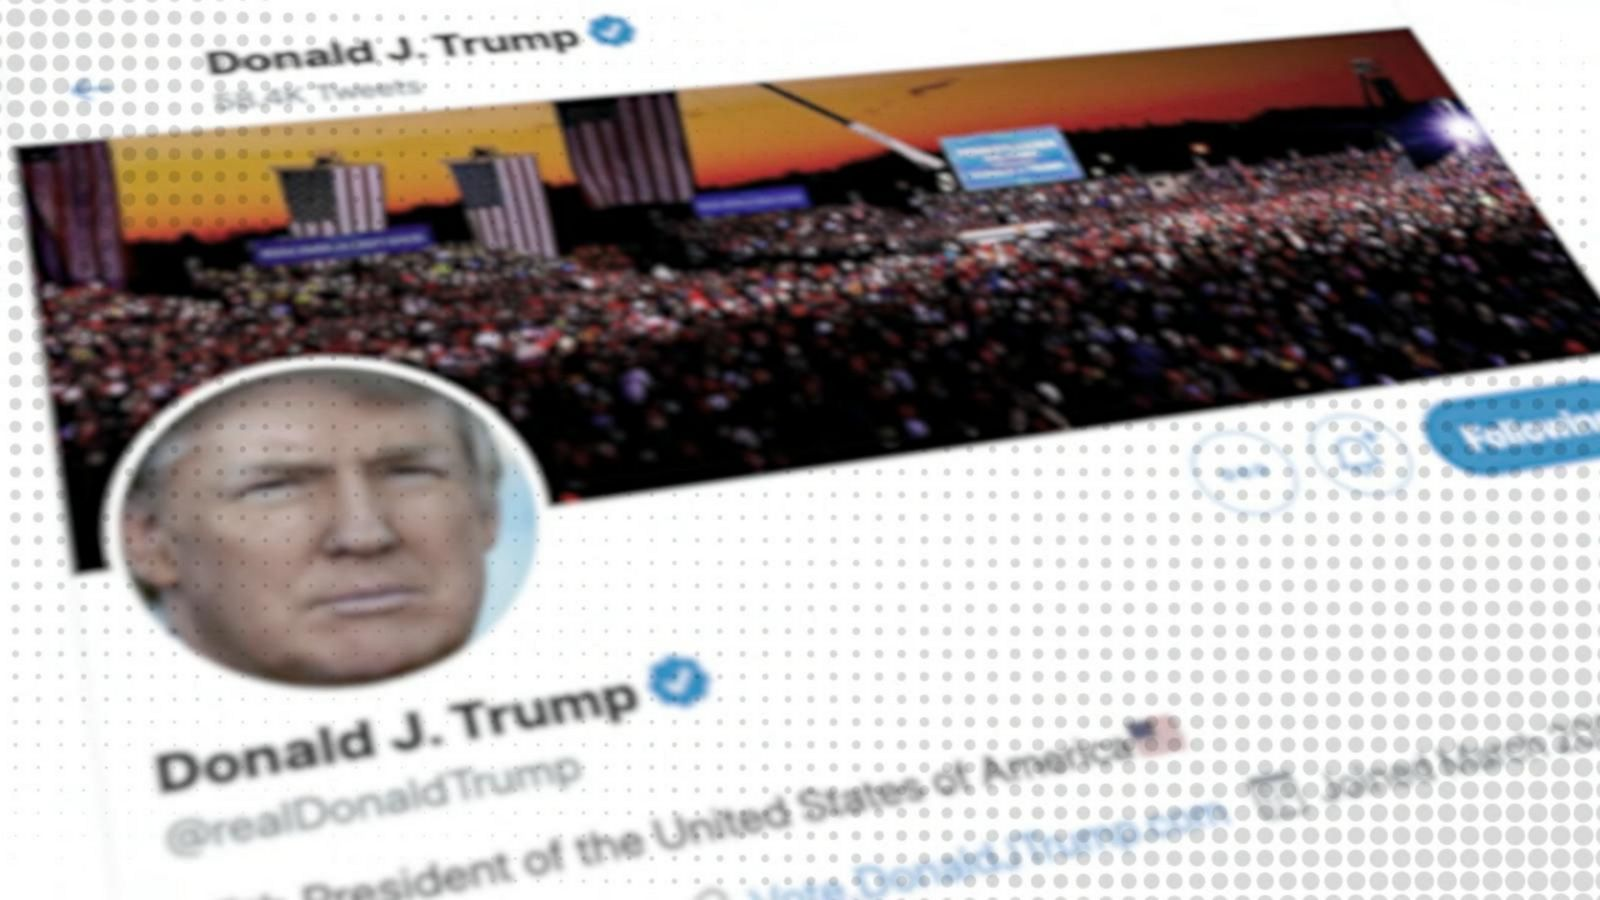 'I do not buy that' a social media ban hurts Trump's 2024 aspirations: Nate Silver